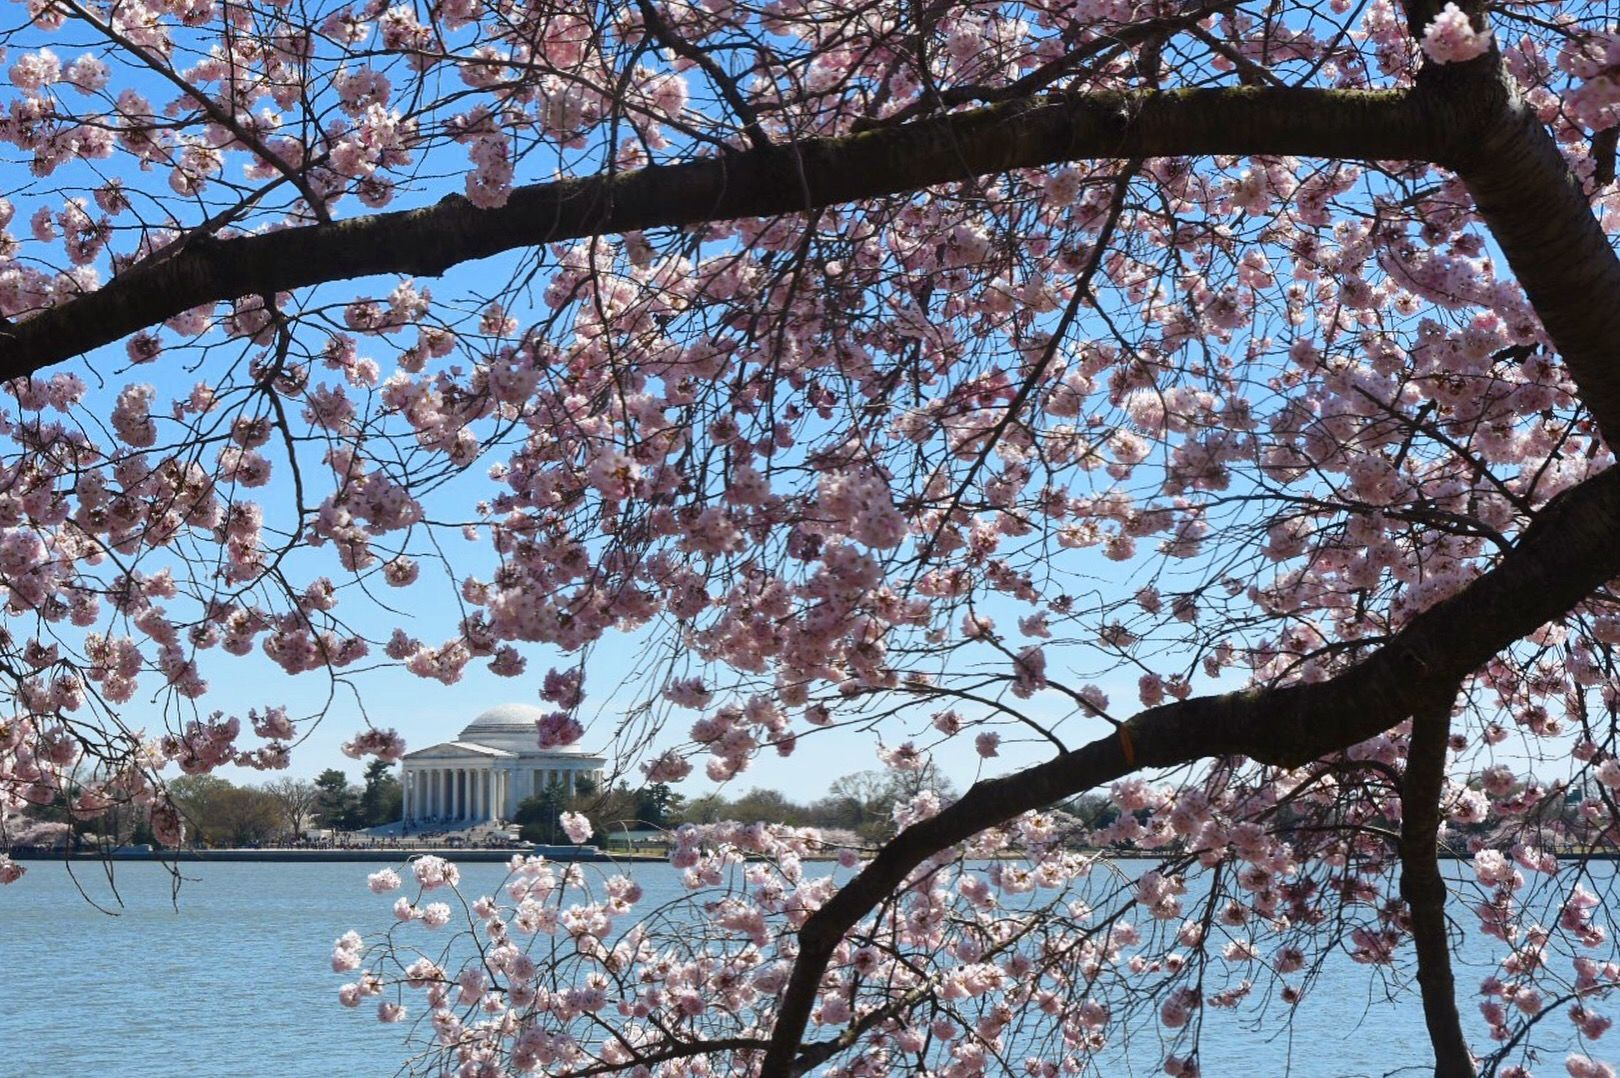 The cherry trees around the Tidal Basin achieved peak bloom on a brisk Monday, April 1, 2019. Winds gusted over 30 miles per hour, ruffling the water of the Tidal Basin. (WTOP/Dave Dildine)